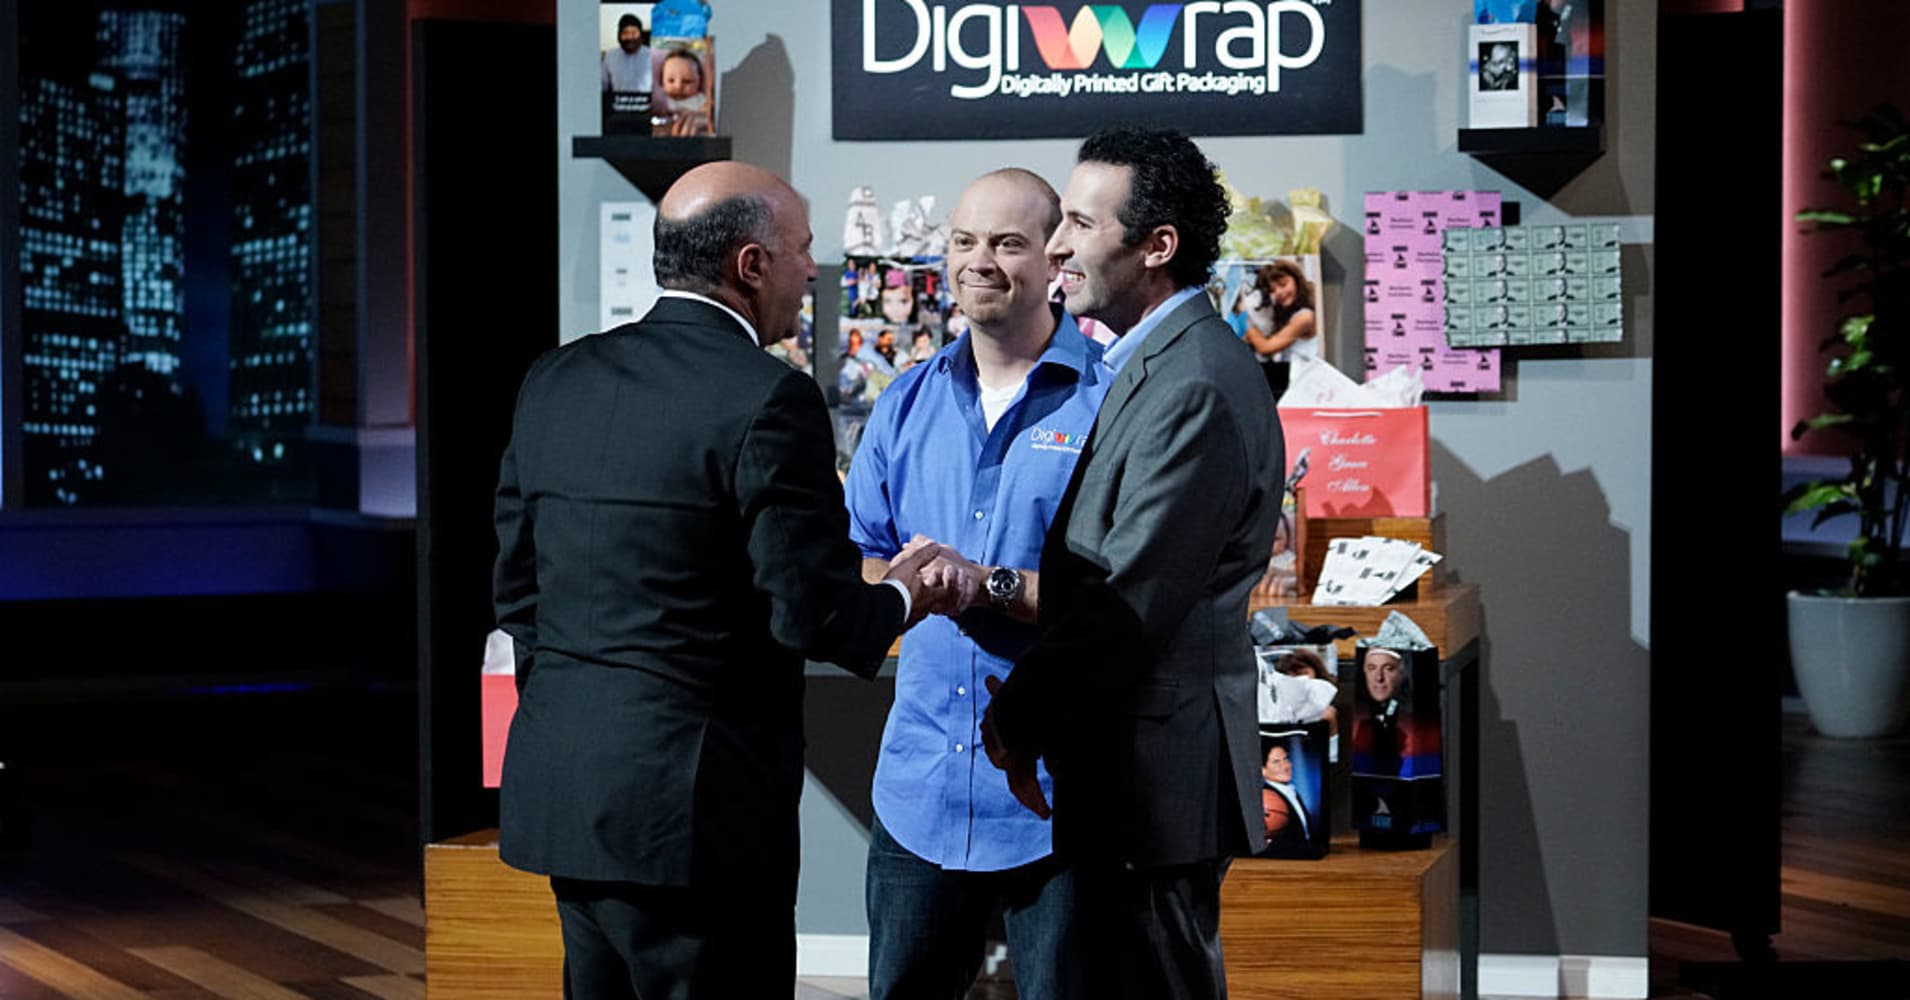 Charlie Williams and Brad Boskovic of DigiWrap making a deal with Kevin O'Leary.